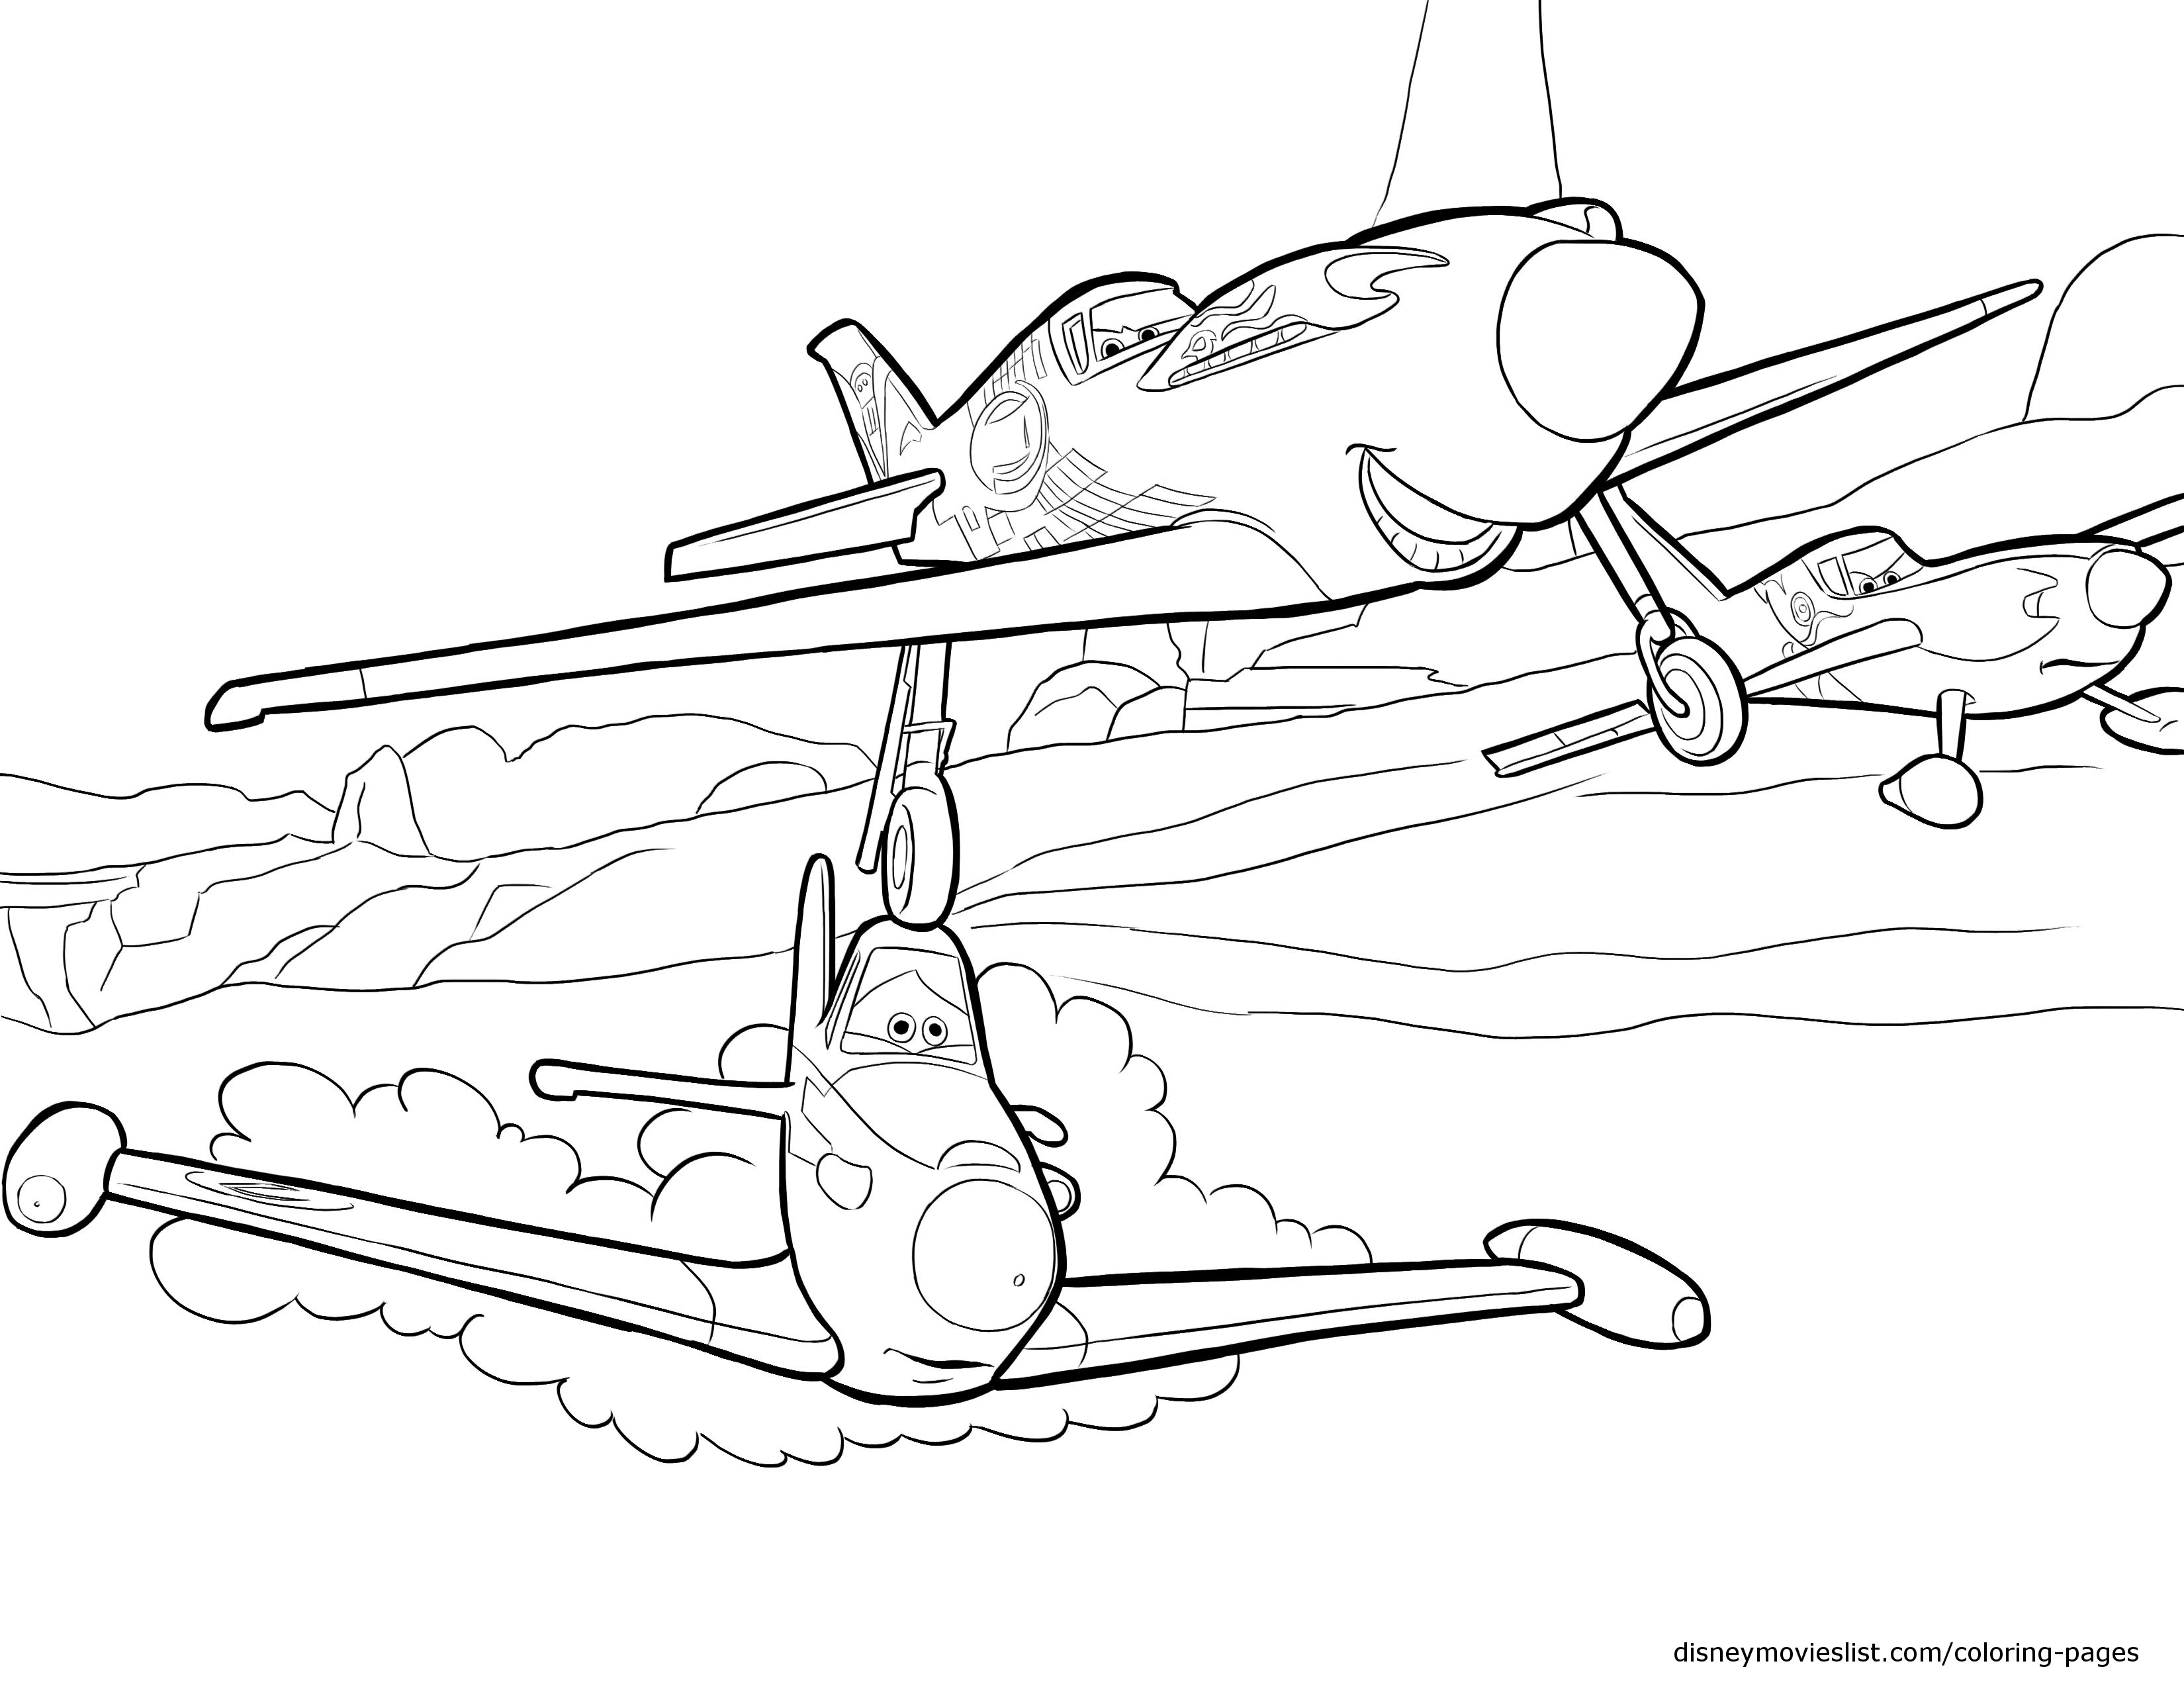 Dusty Planes Drawing At GetDrawings